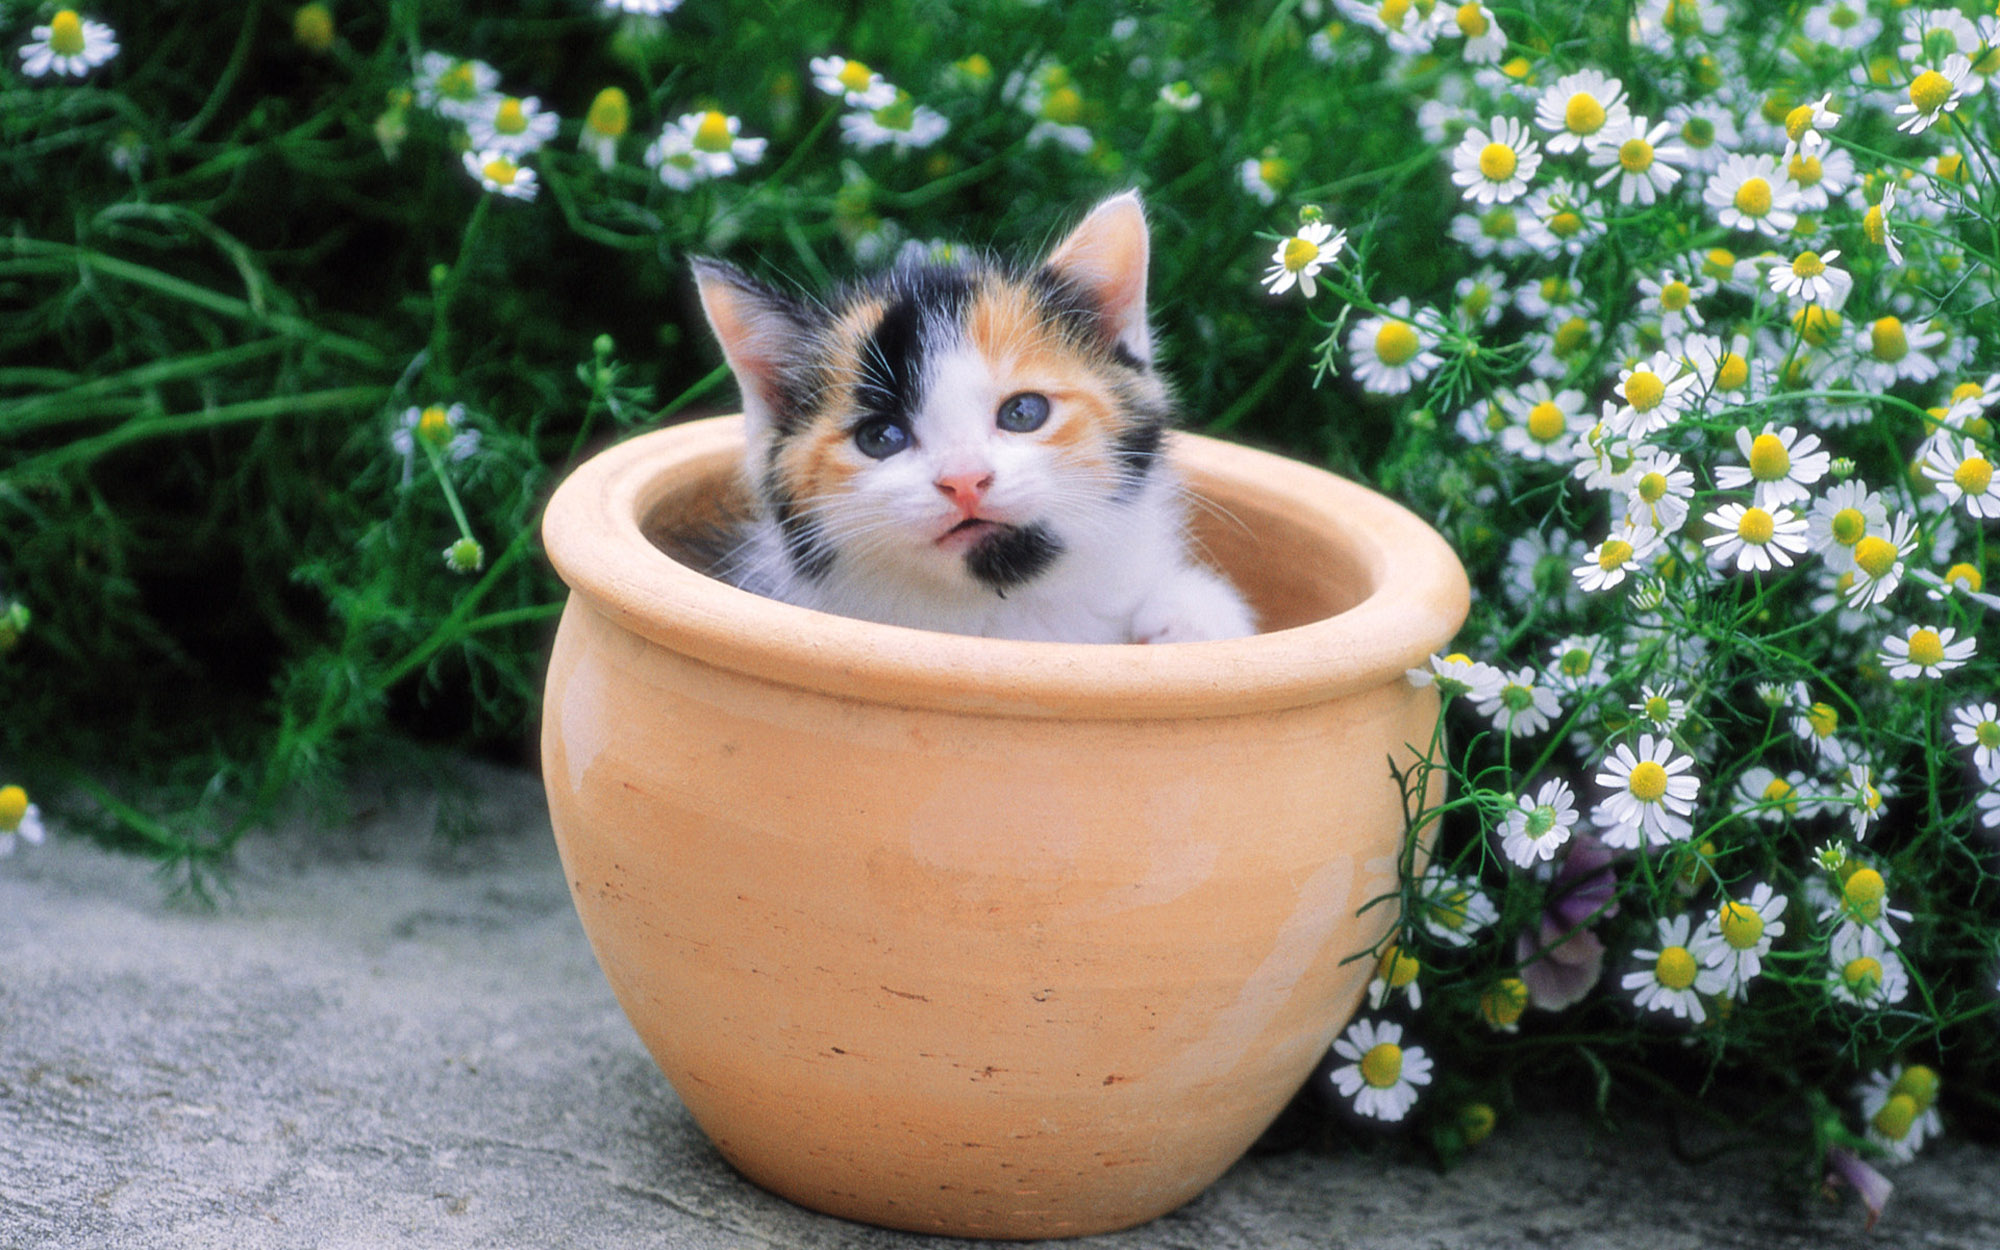 kitten sitting in a flower pot 32474